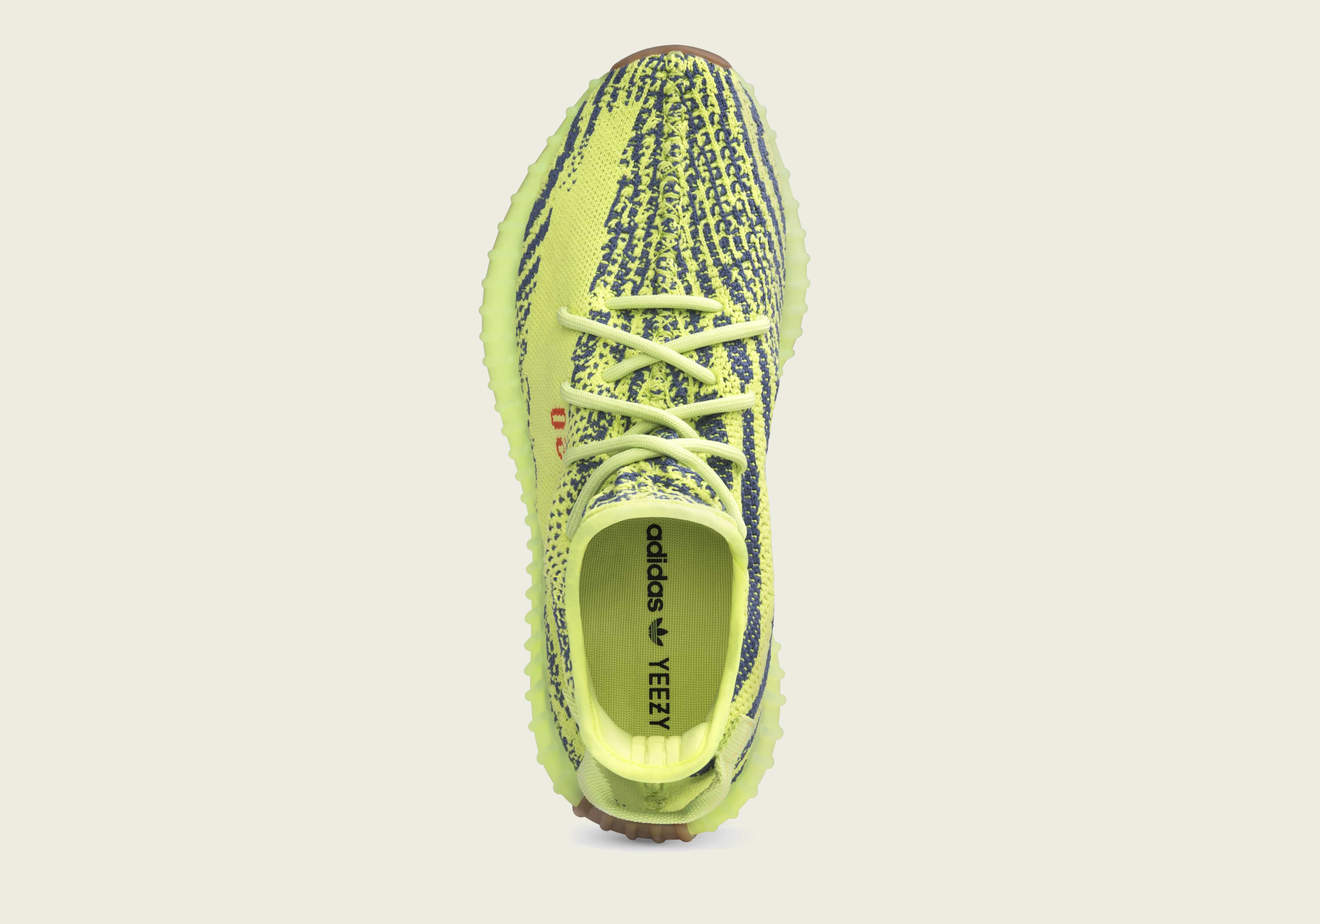 ff03e23bb57 adidas Yeezy Boost 350 V2 November 2018 Restock - JustFreshKicks